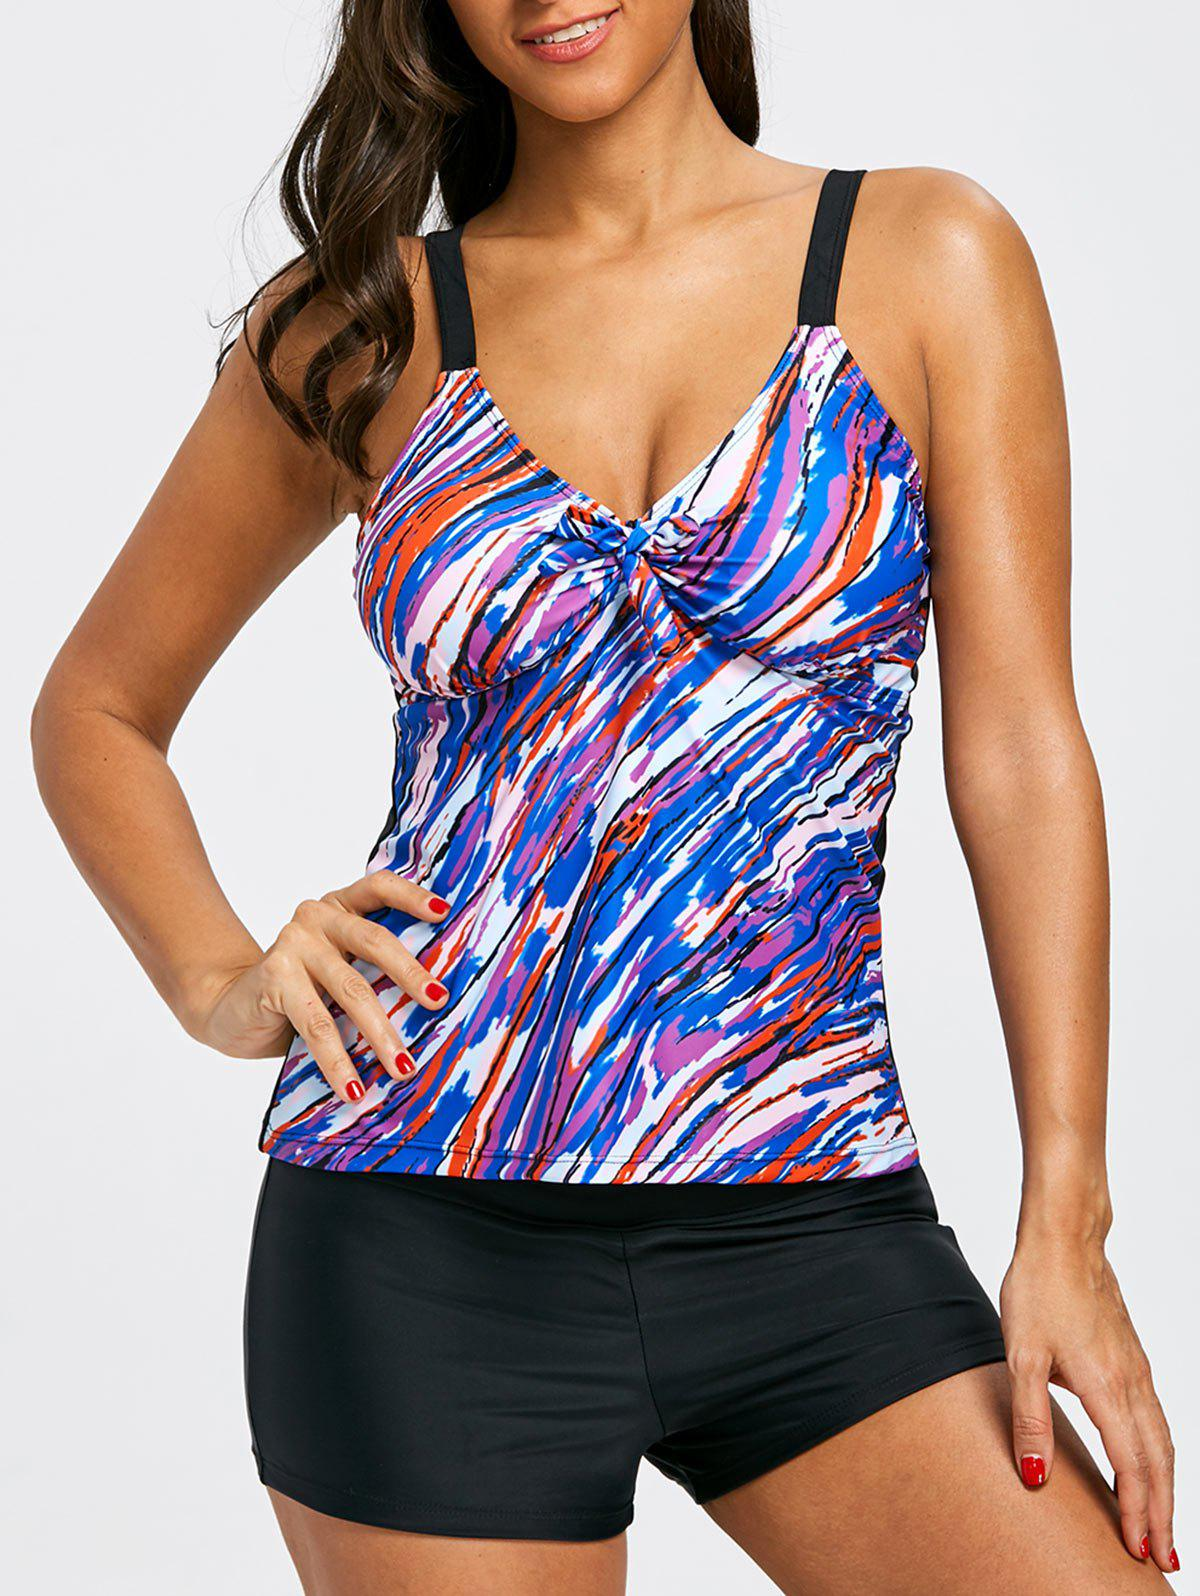 Fancy Cami Strap Empire Waist Tankini Set